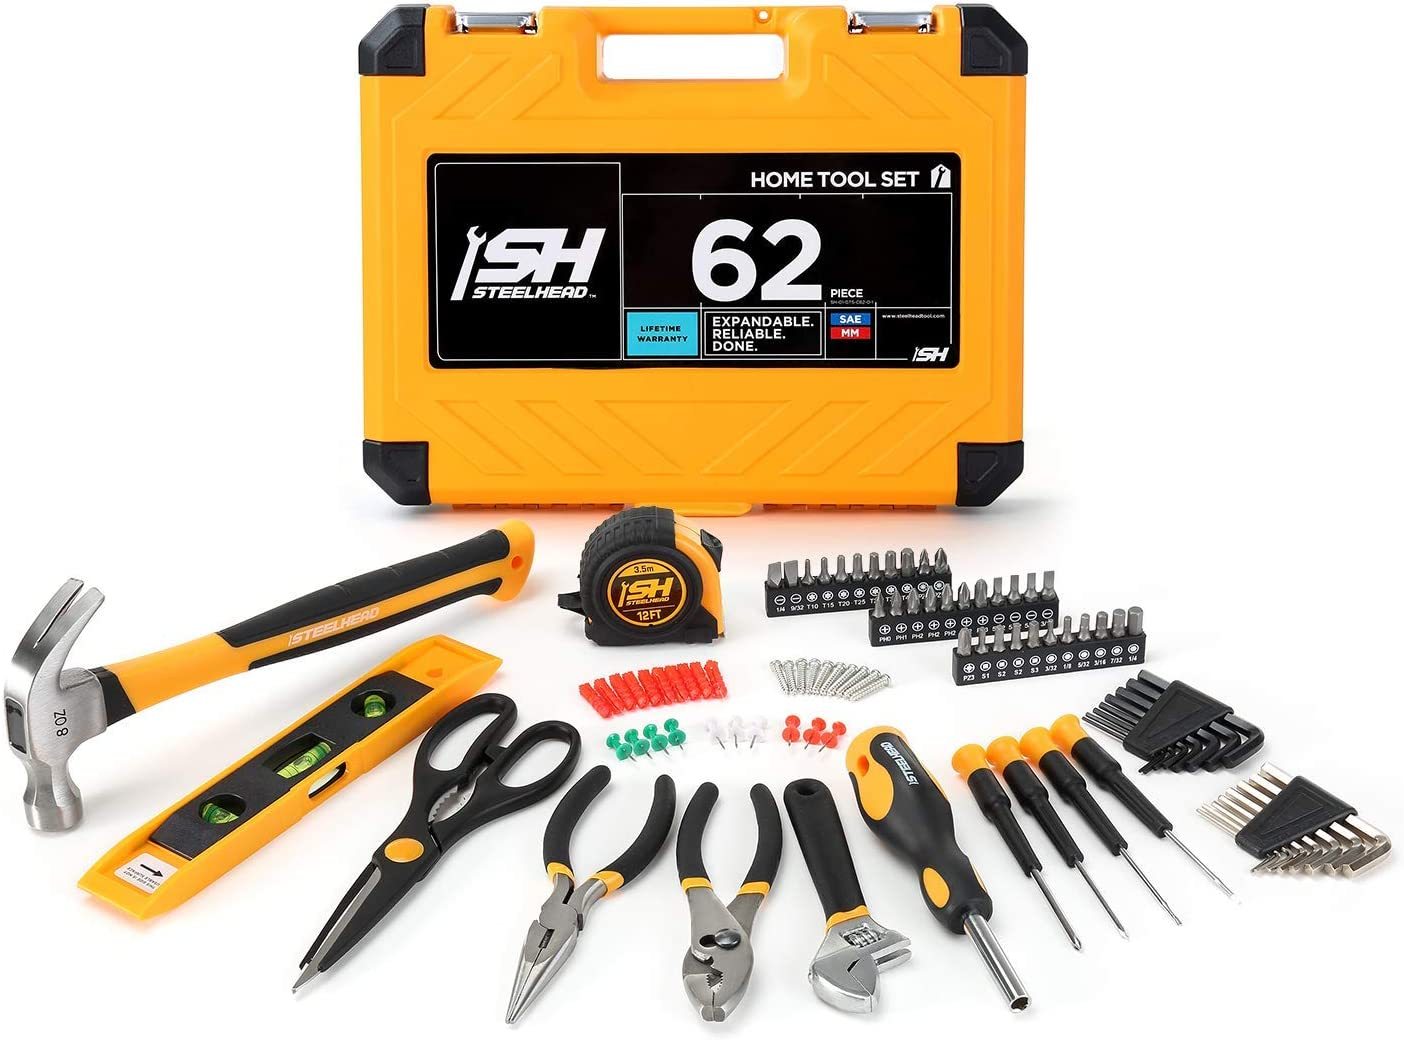 """STEELHEAD 62-Piece Tool Set, Screwdriver Handle, 33 Bits, Pliers, Tape Measure, 9"""" Torpedo Level, Hammer, Scissors, Wrench, Heavy-Duty Reinforced Case, Great for Home, Office, Dorm, USA-Based Support"""